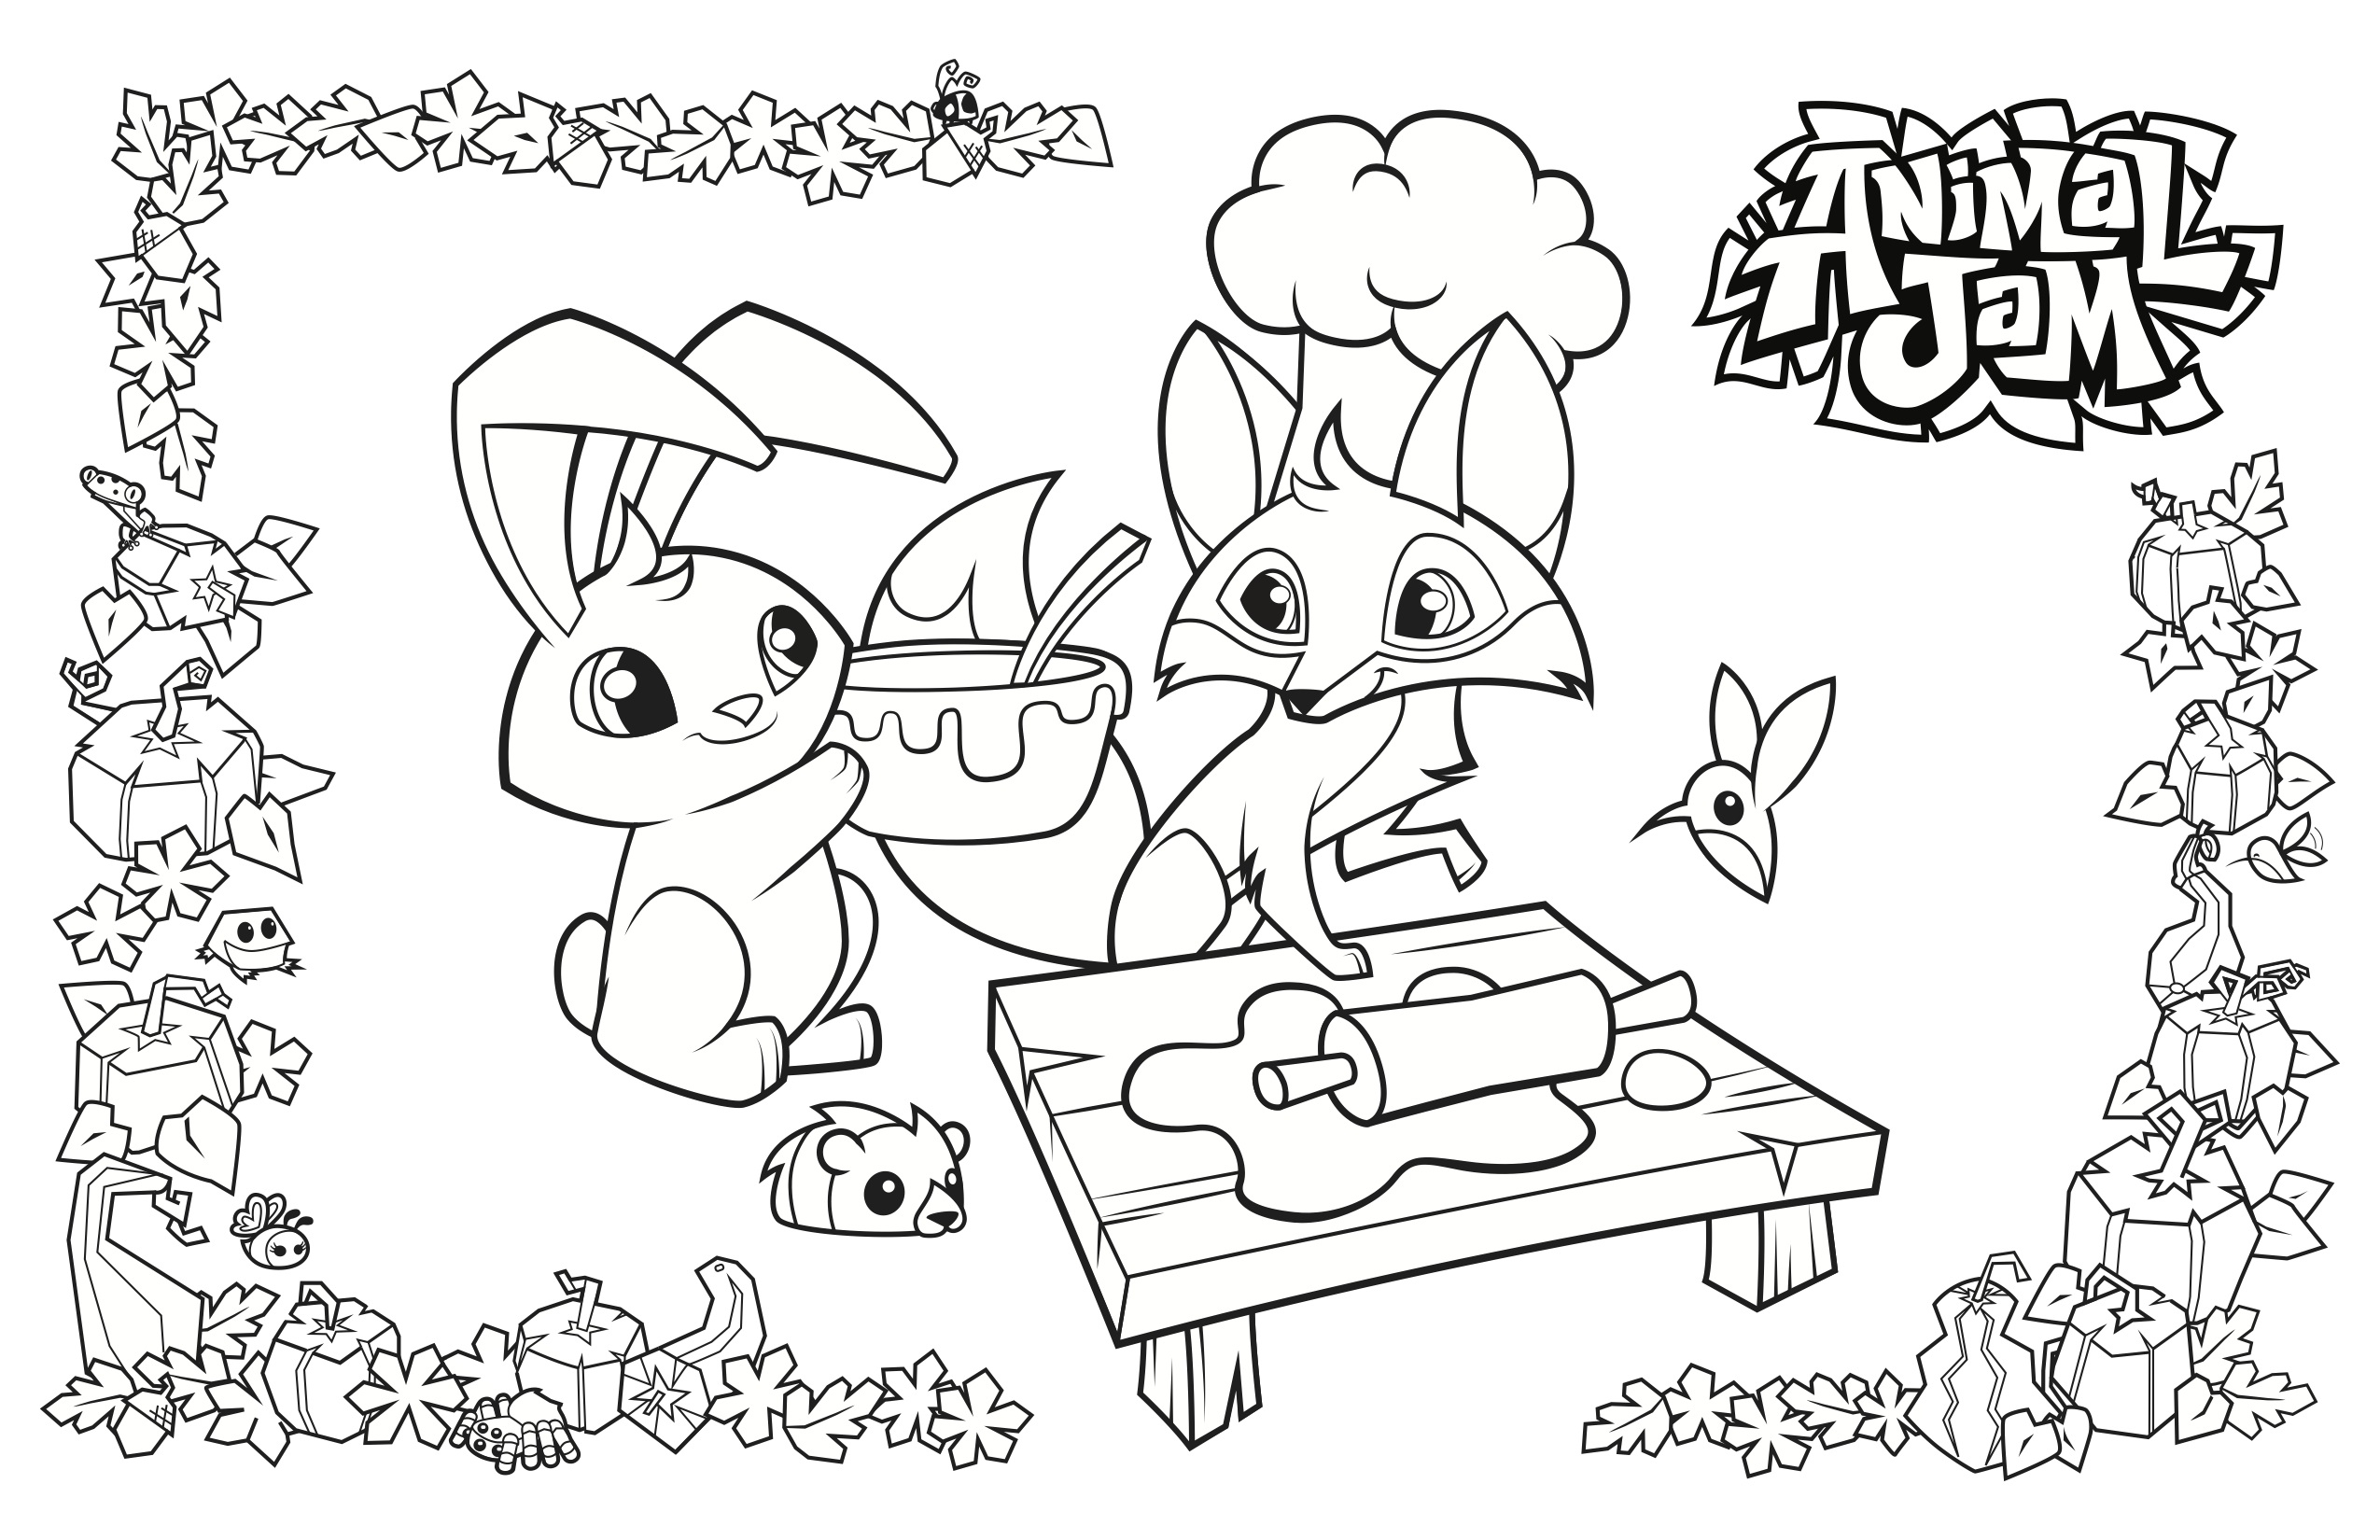 2550x1650 Shrewd Animal Jam Coloring Pages Printable Awesome Lynx Wiki Free